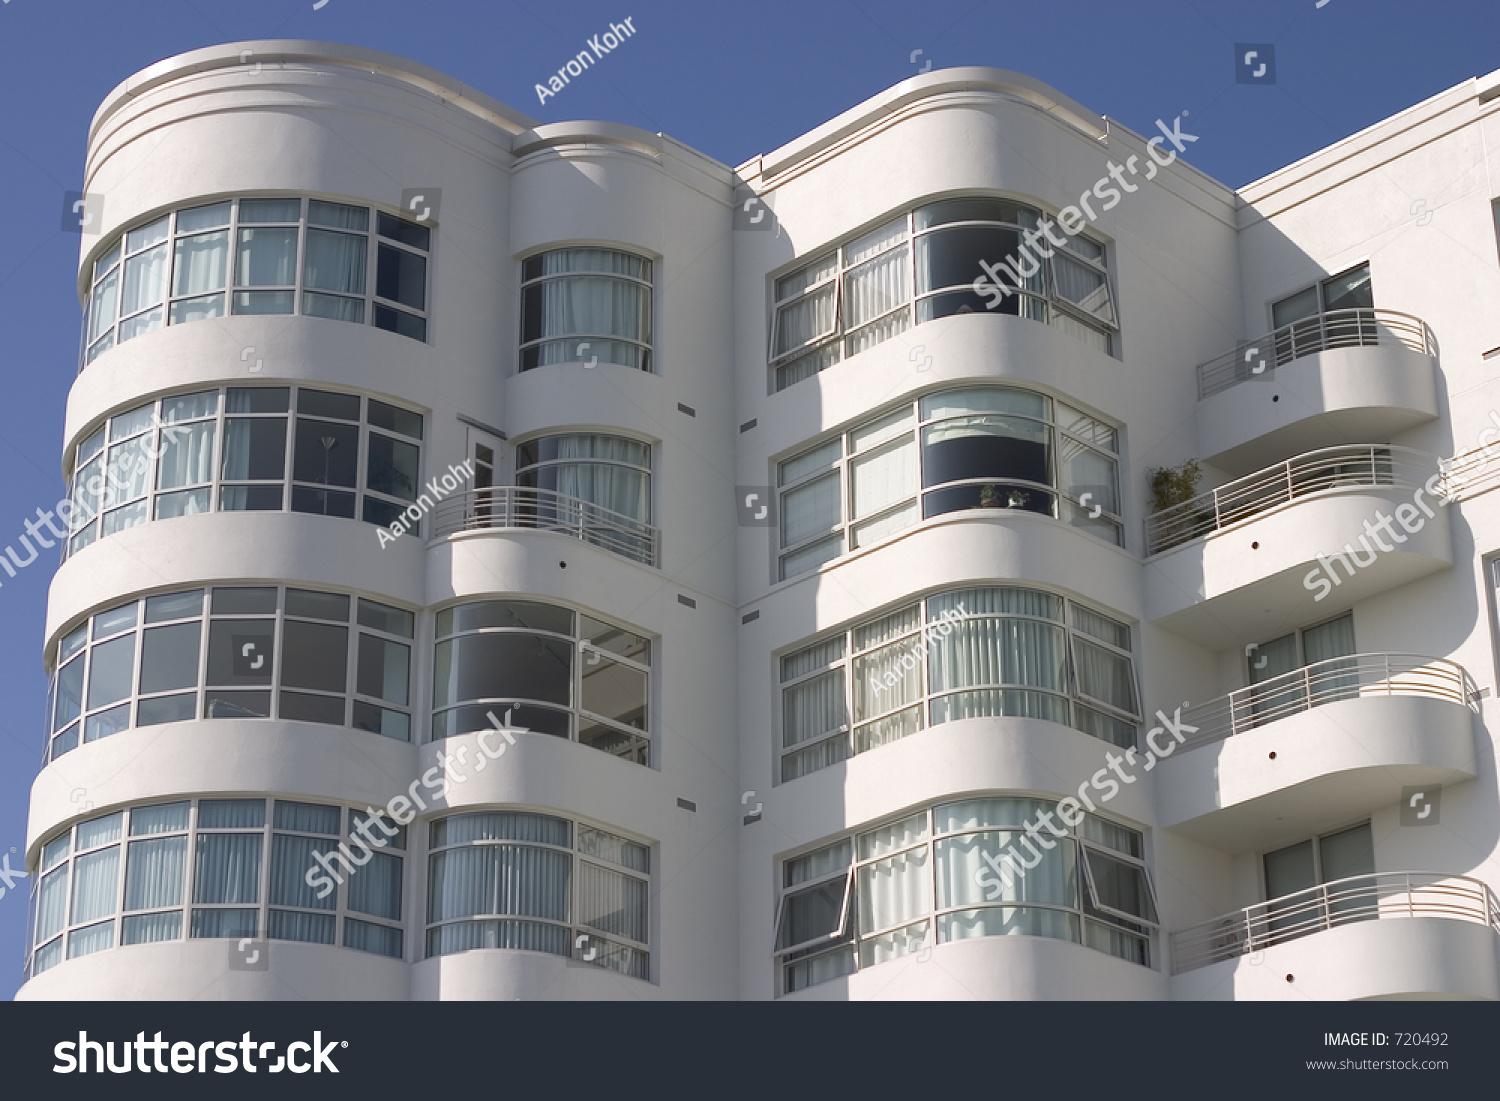 Art Deco Apartments Los Angeles - quickweightlosscenter.us